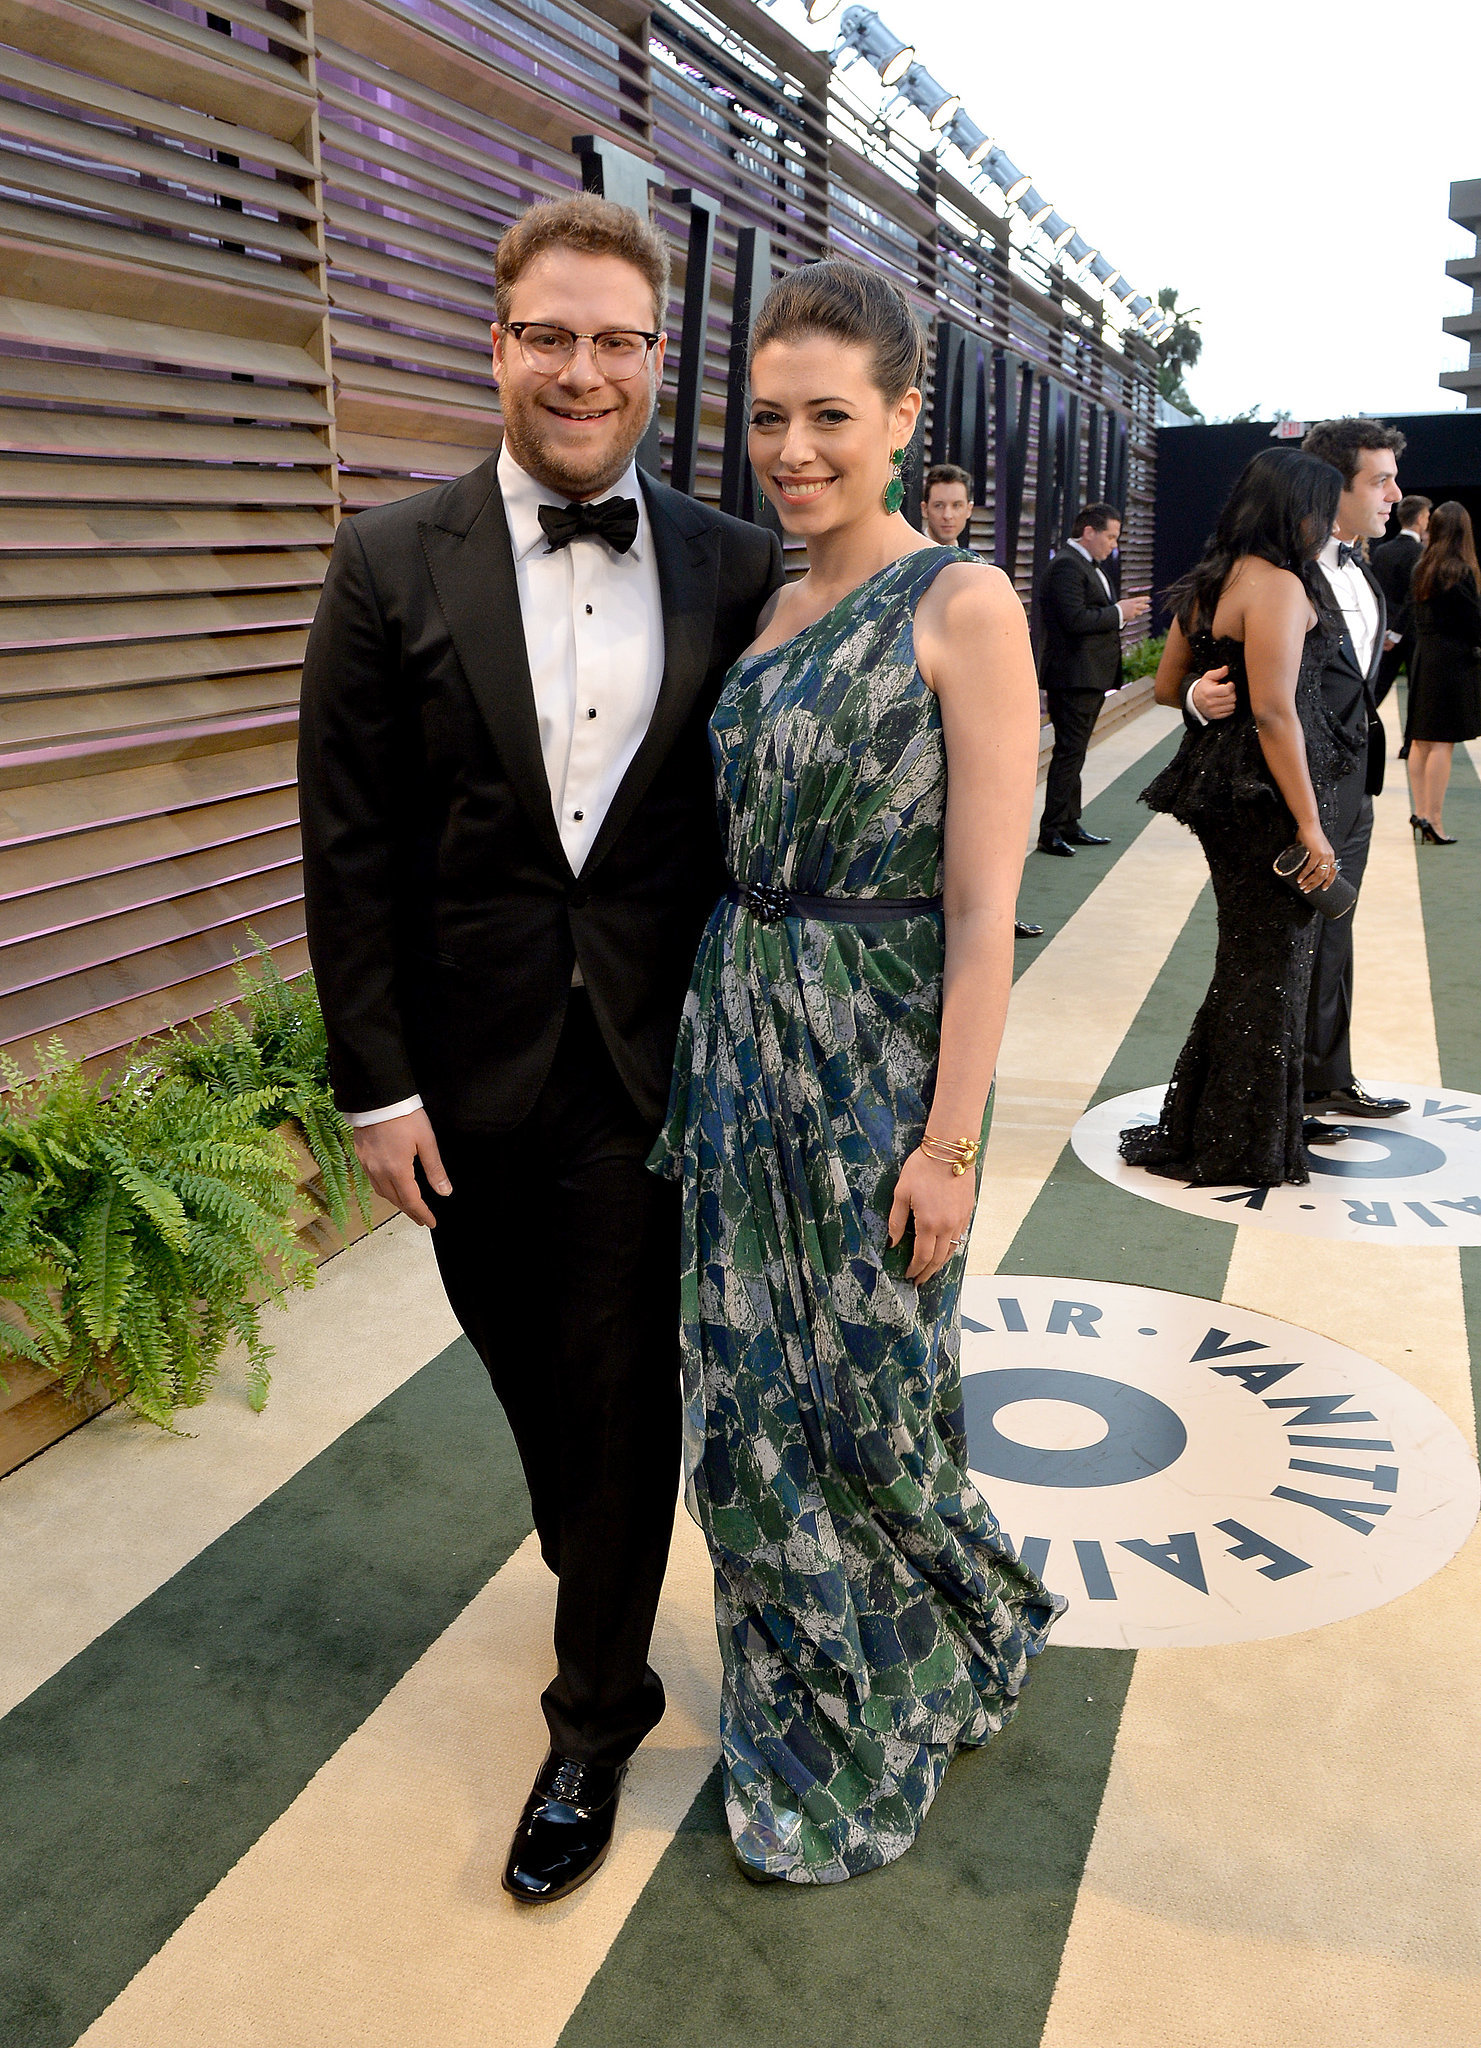 Seth-Rogen-showed-up-his-wife-Lauren-Miller.jpg